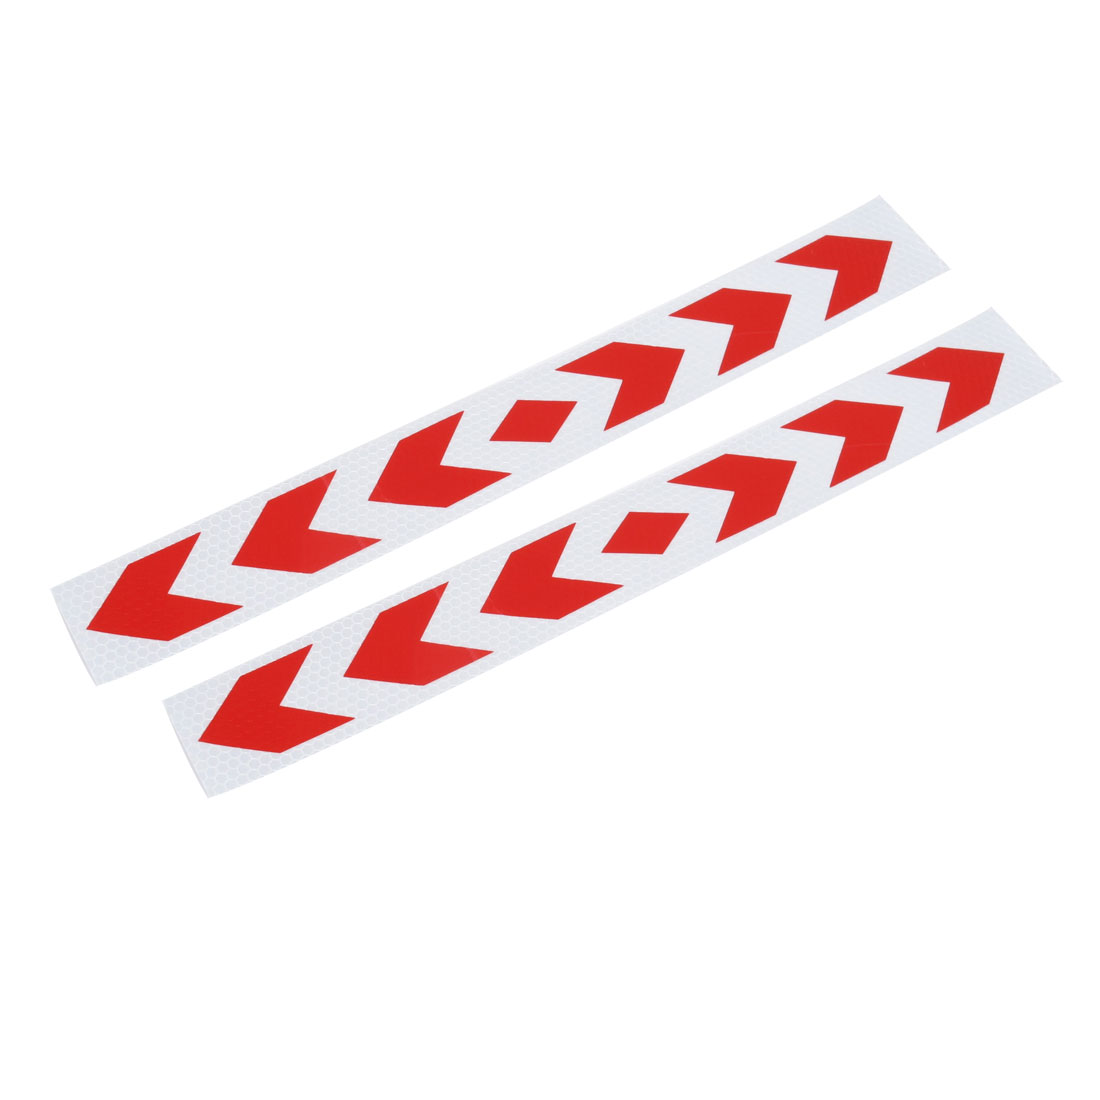 2 Pcs Red Silver Tone Arrow Pattern Track Car Decor Safety Sticker Decal